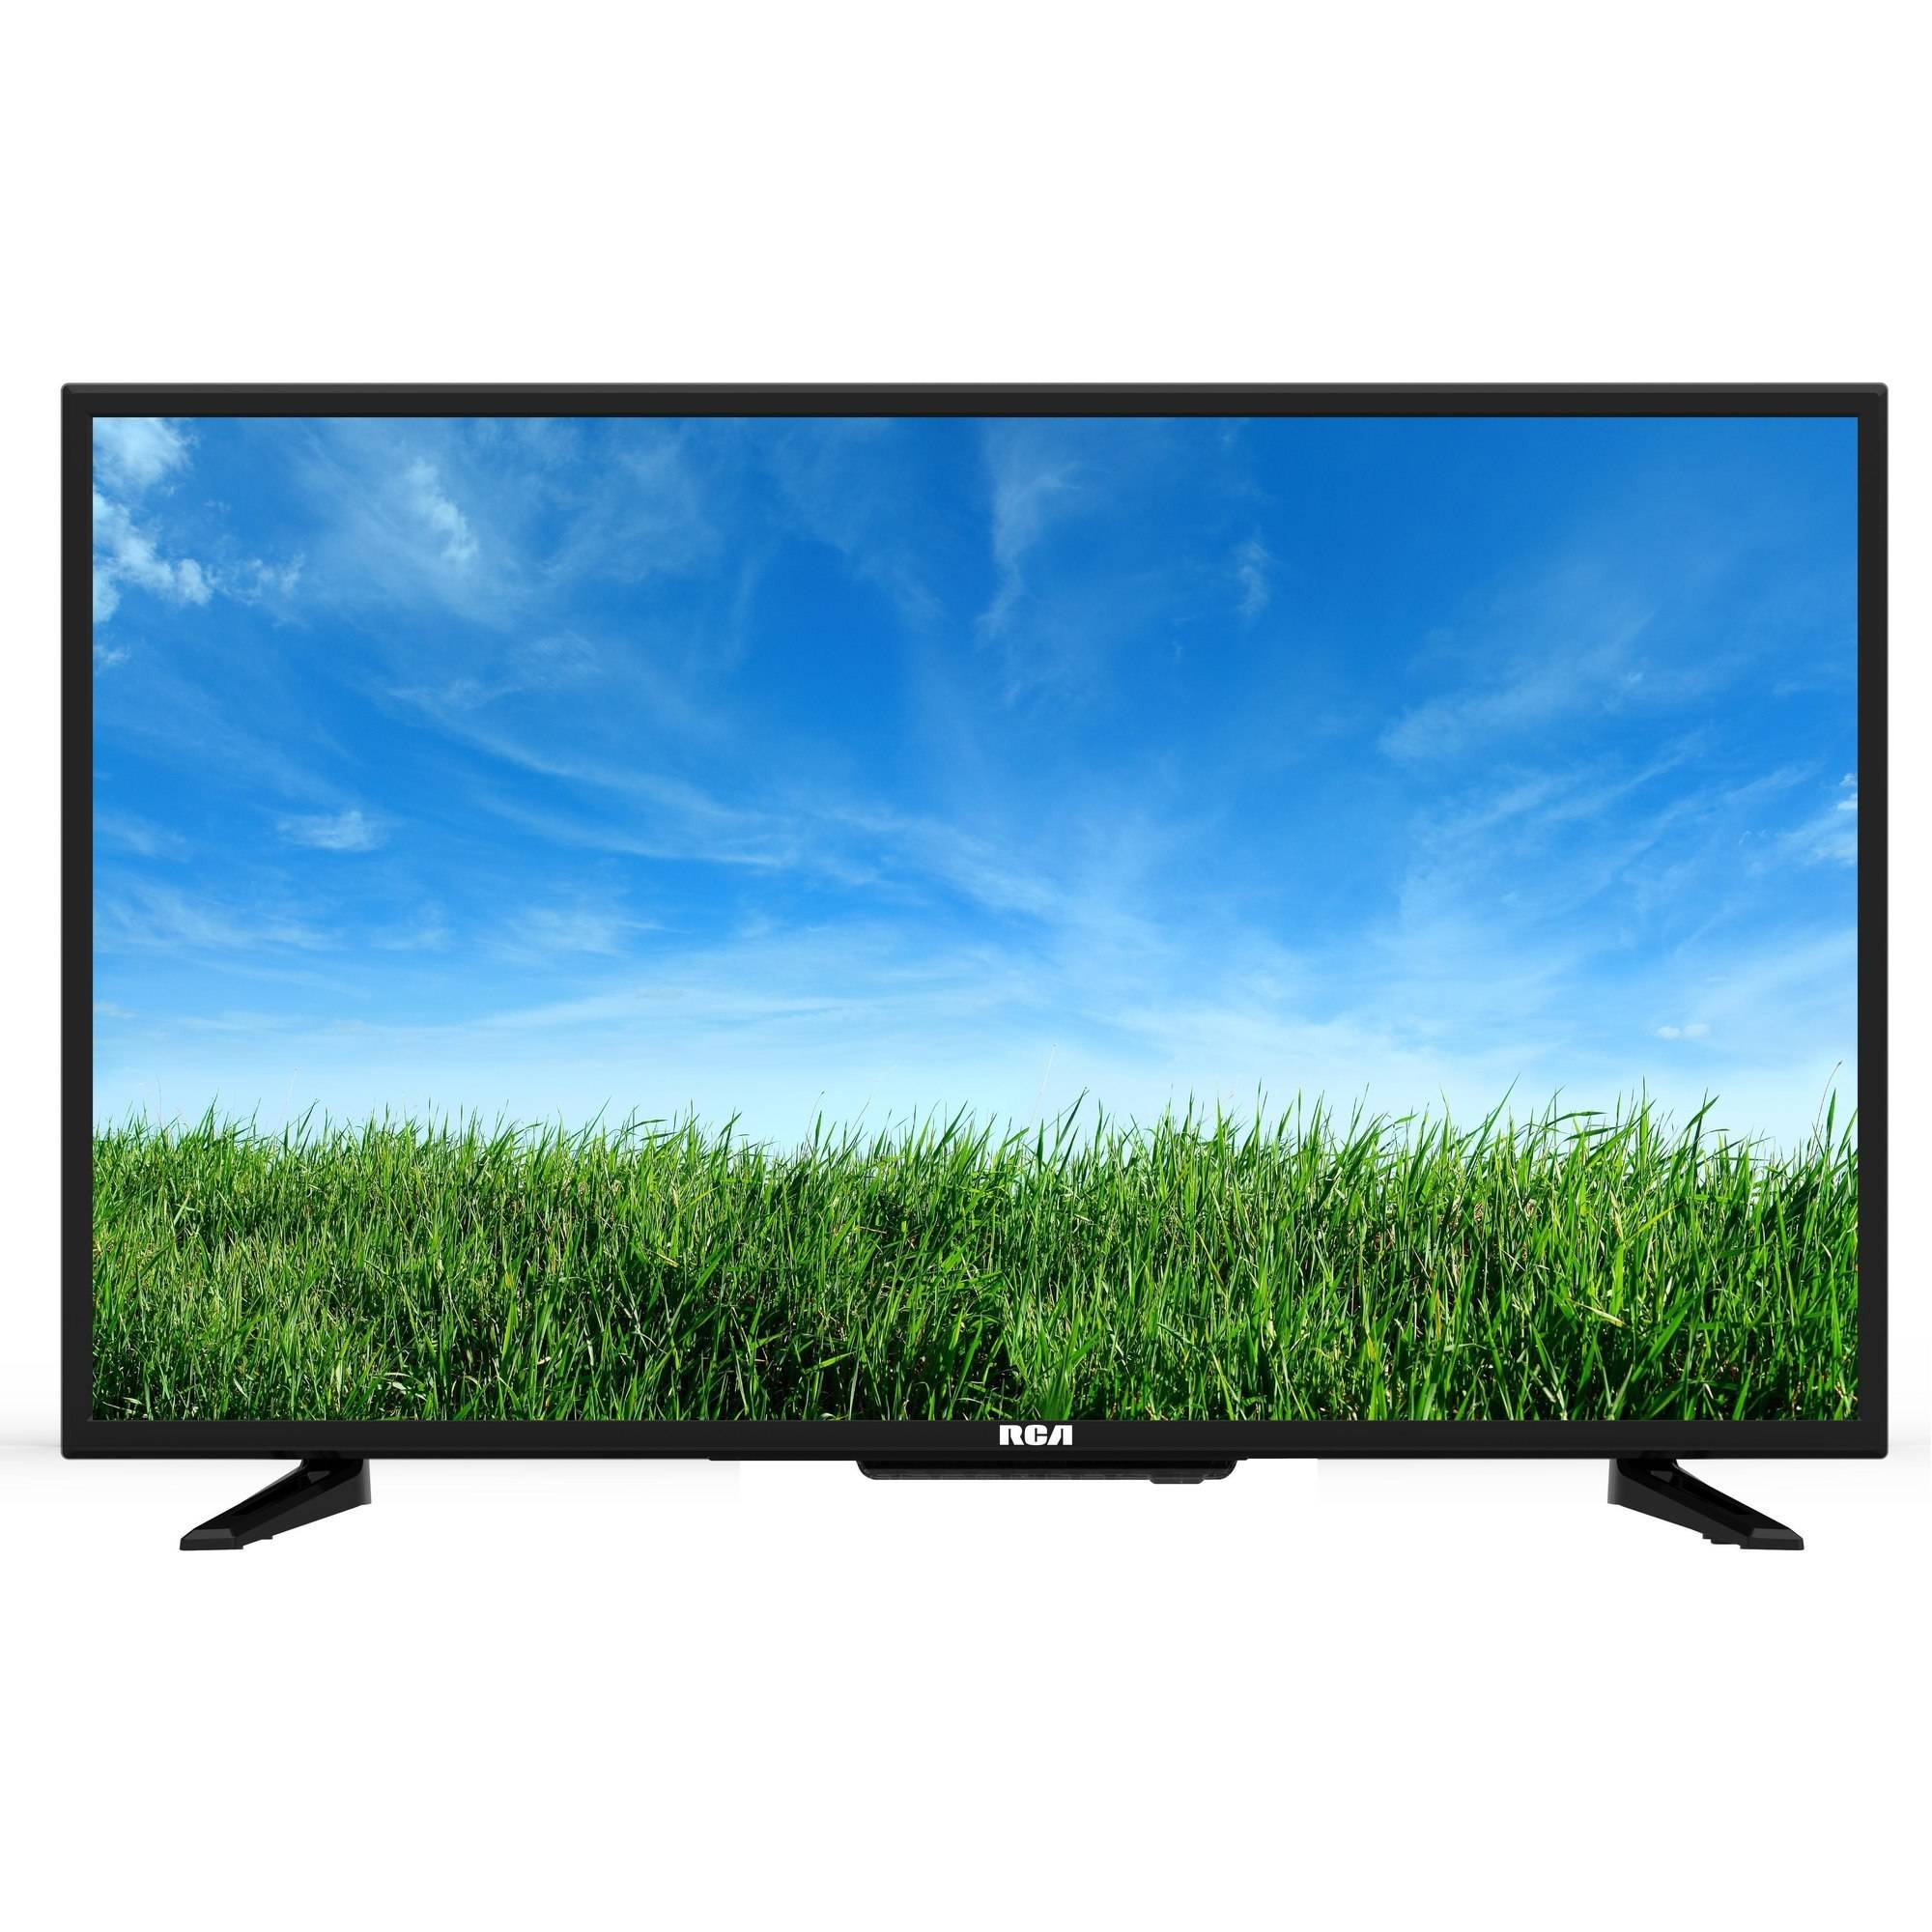 How to Play DVD on Flat Screen TV with DVD Player  Leawo